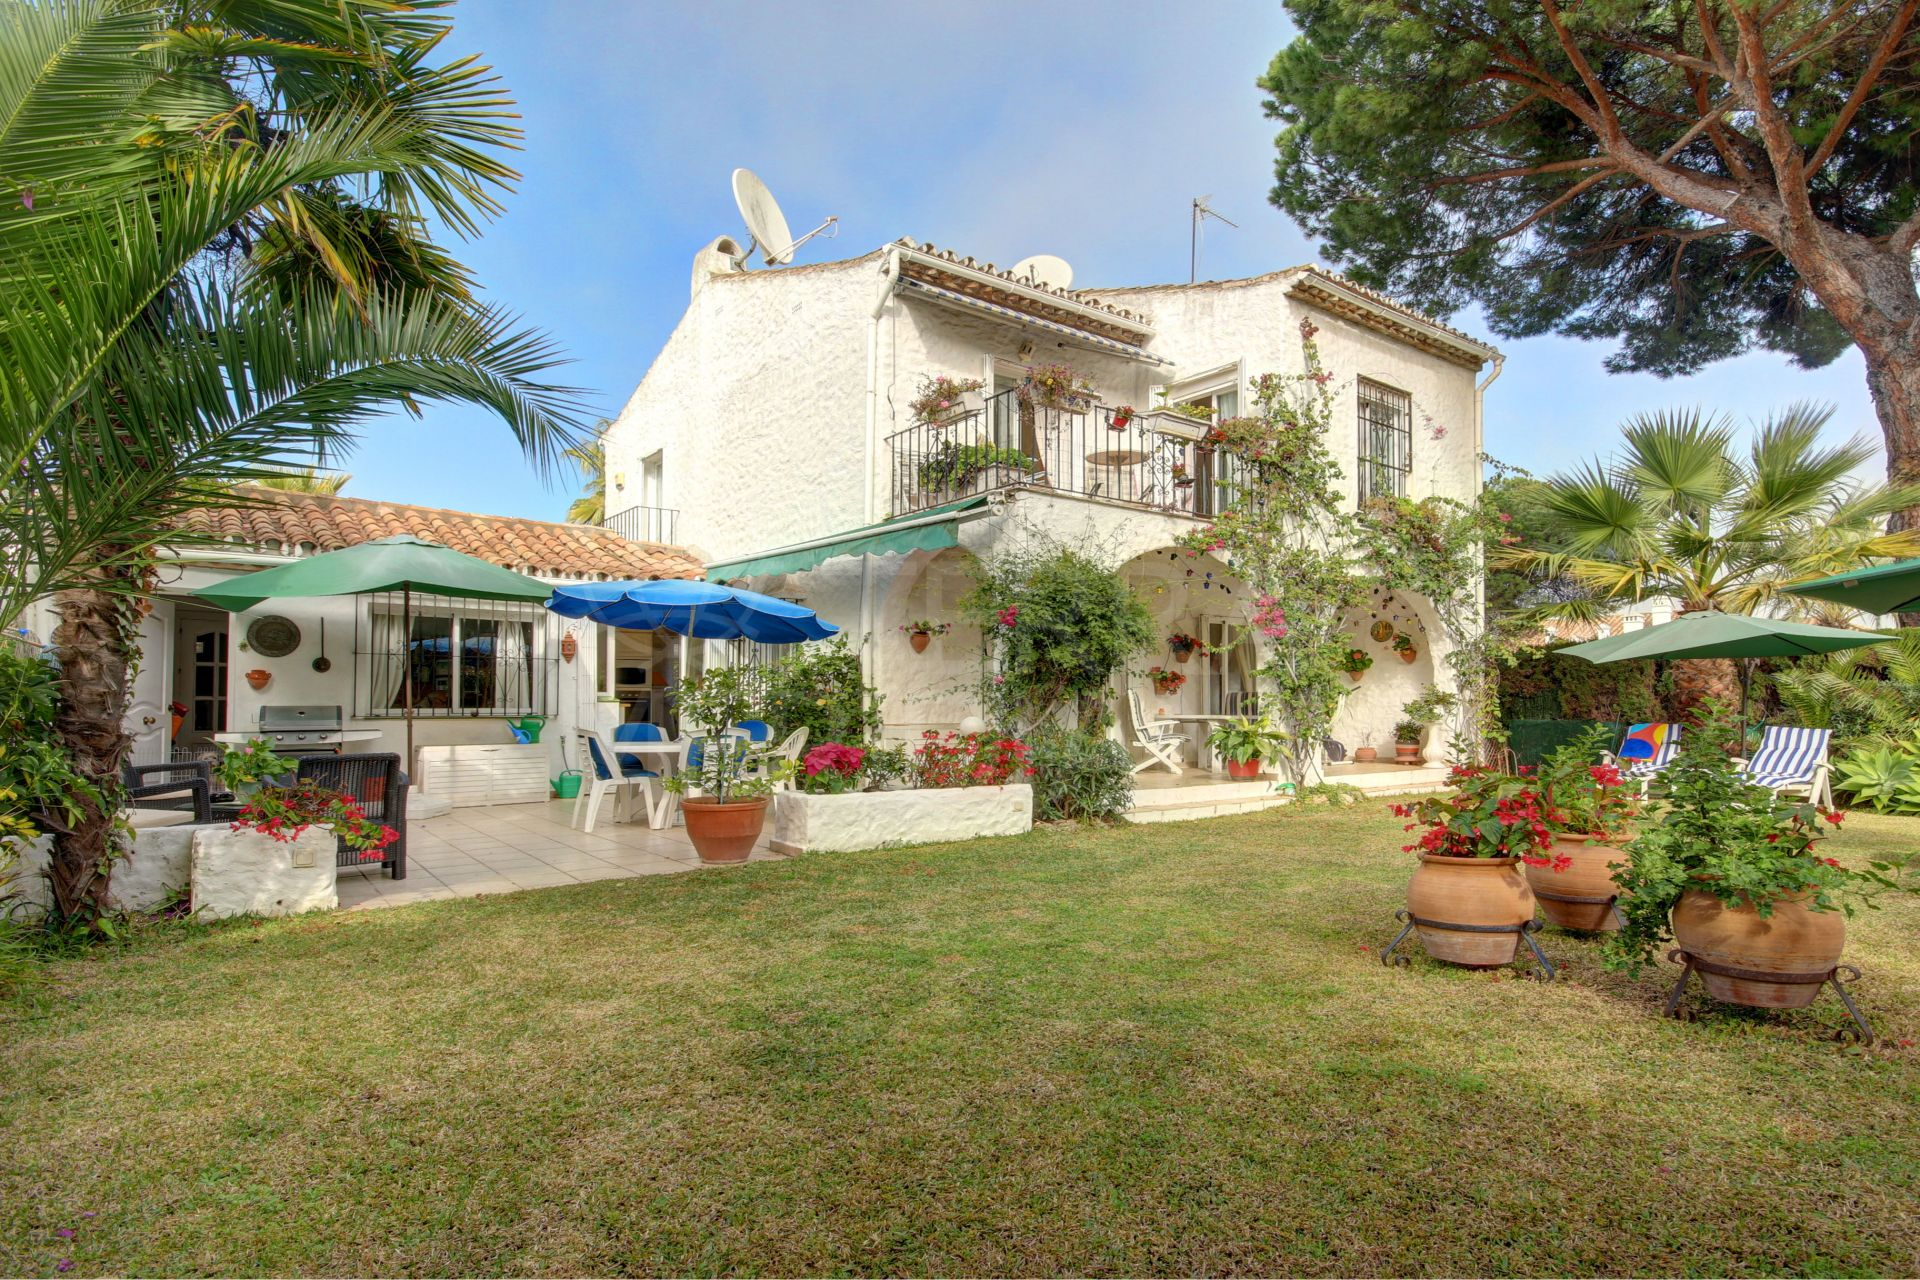 Mediterranean Style Villa For Sale In Benamara New Golden Mile Estepona